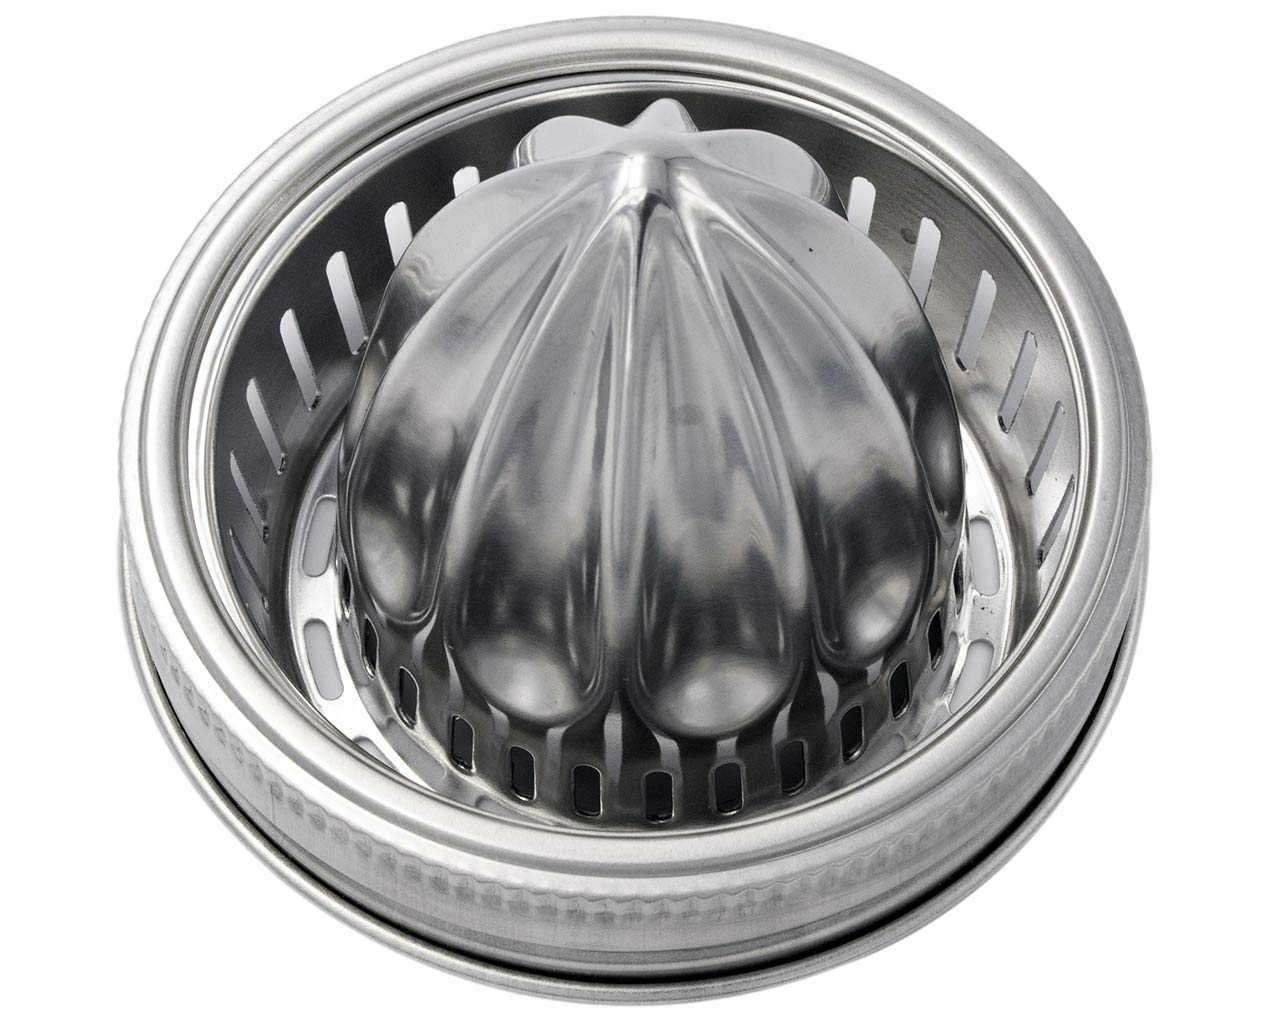 Jarware Stainless Steel Juicing Lid with Rust Proof Band for Wide Mouth Mason Jars